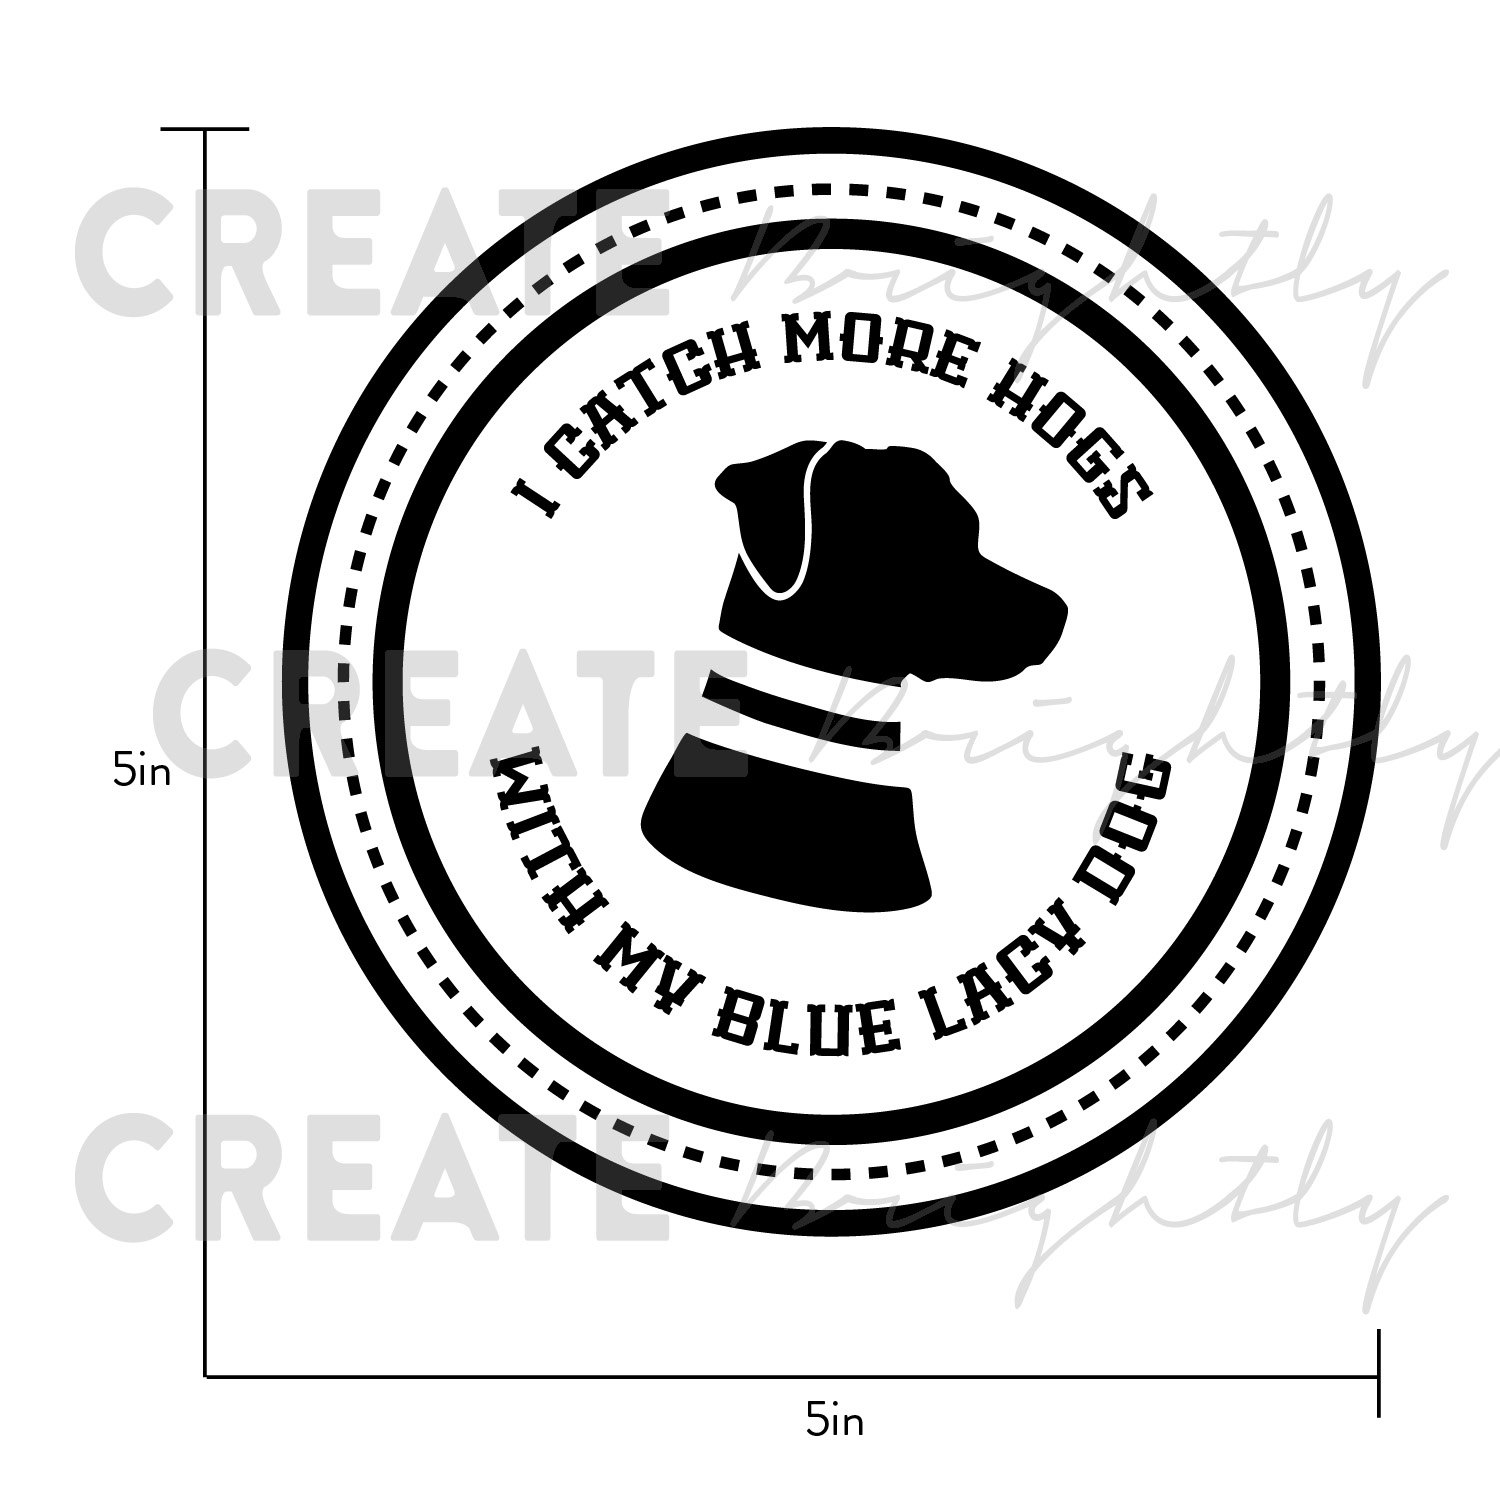 Blue Lacy Dog Vinyl Decal Sticker, Blue Lacy Dog, American Lacy.